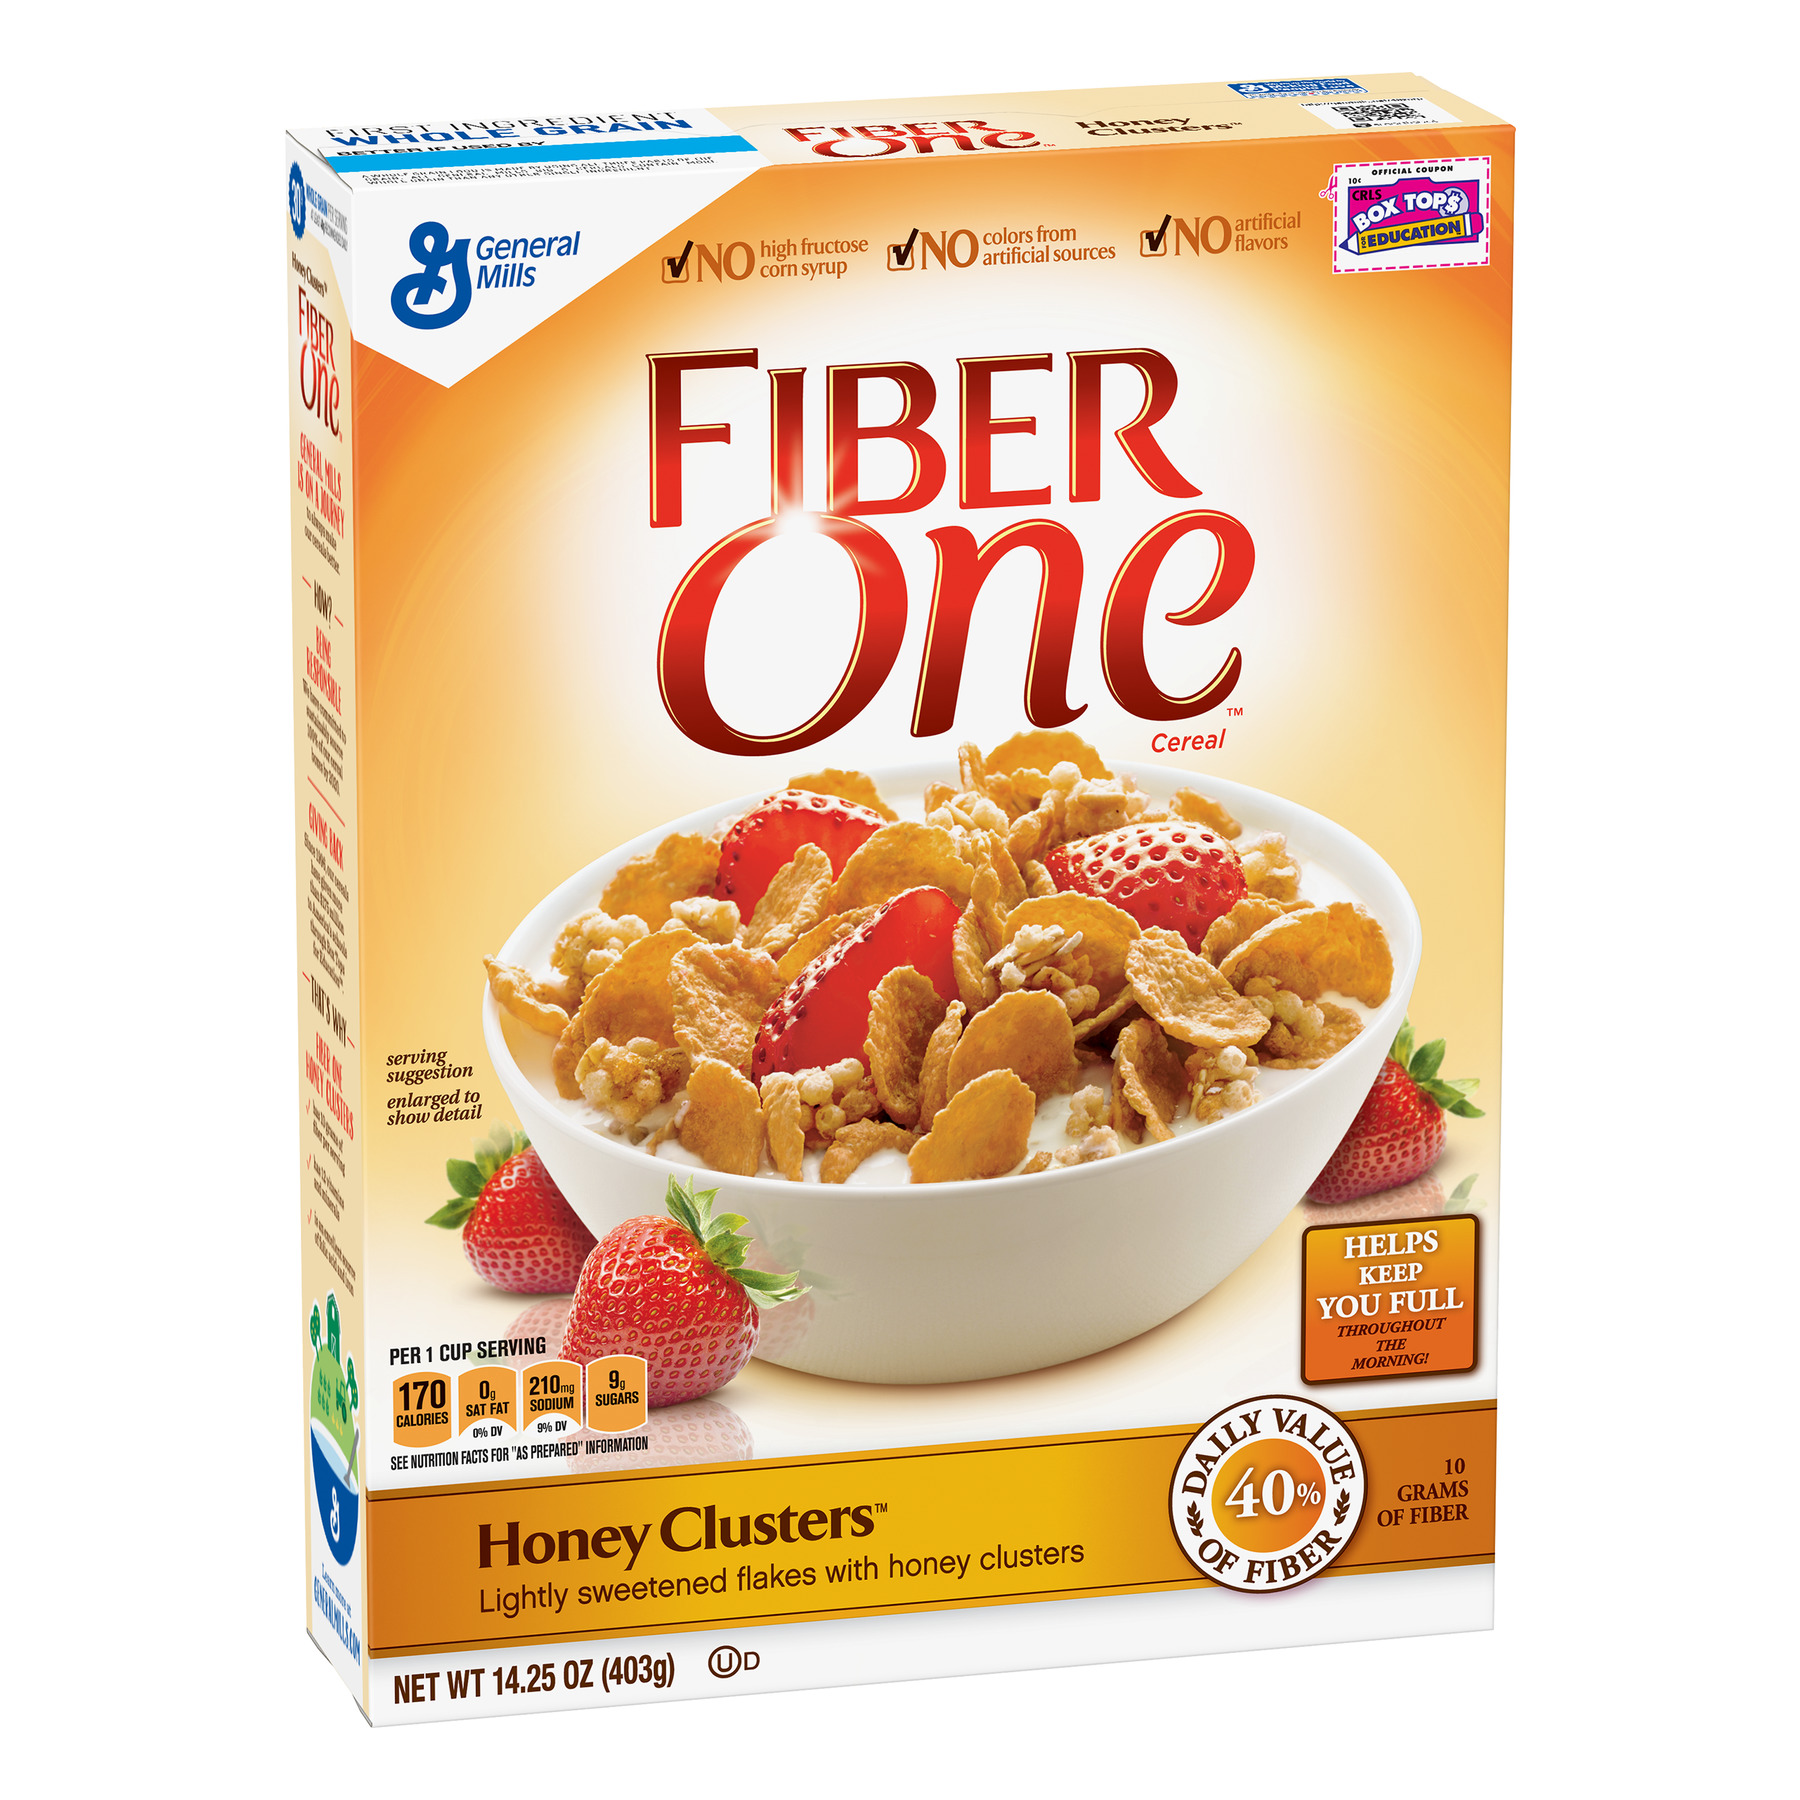 Fiber One Cereal, Honey Clusters, Whole Grain Cereal 14.25 Oz